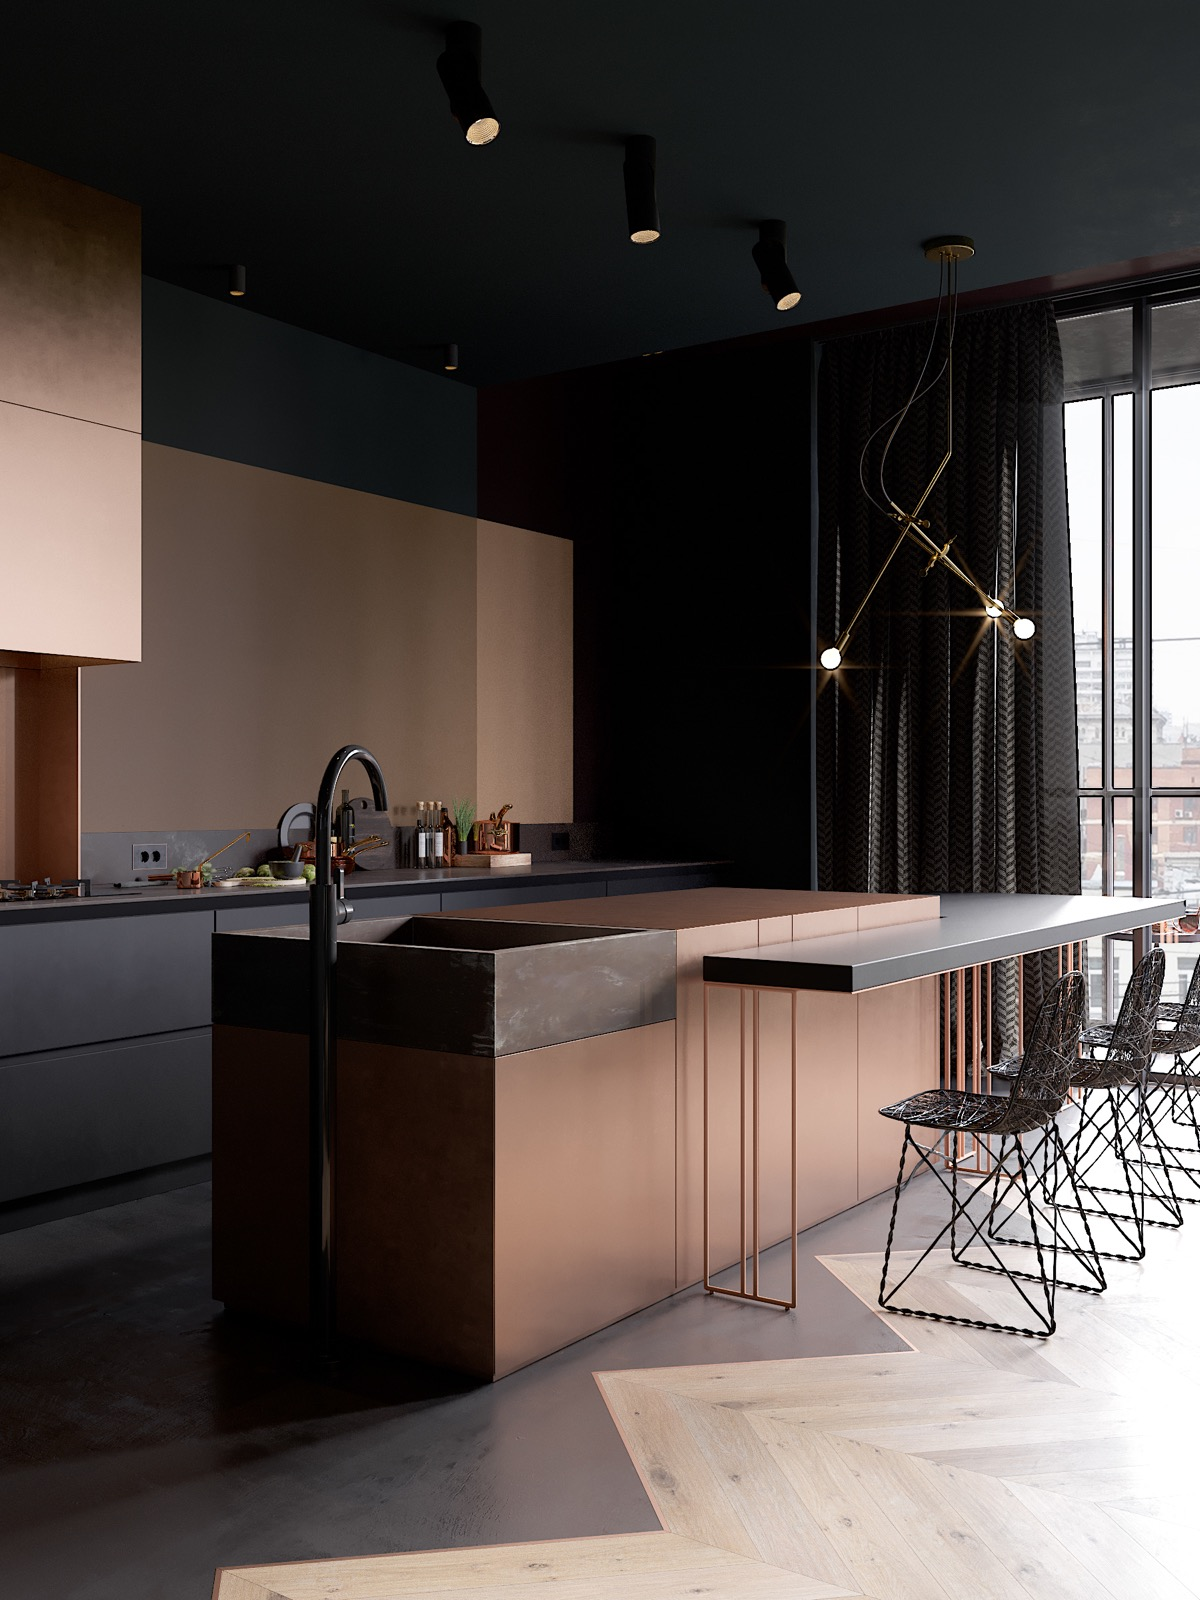 36 Copper Kitchens With Images Tips And Accessories To Help